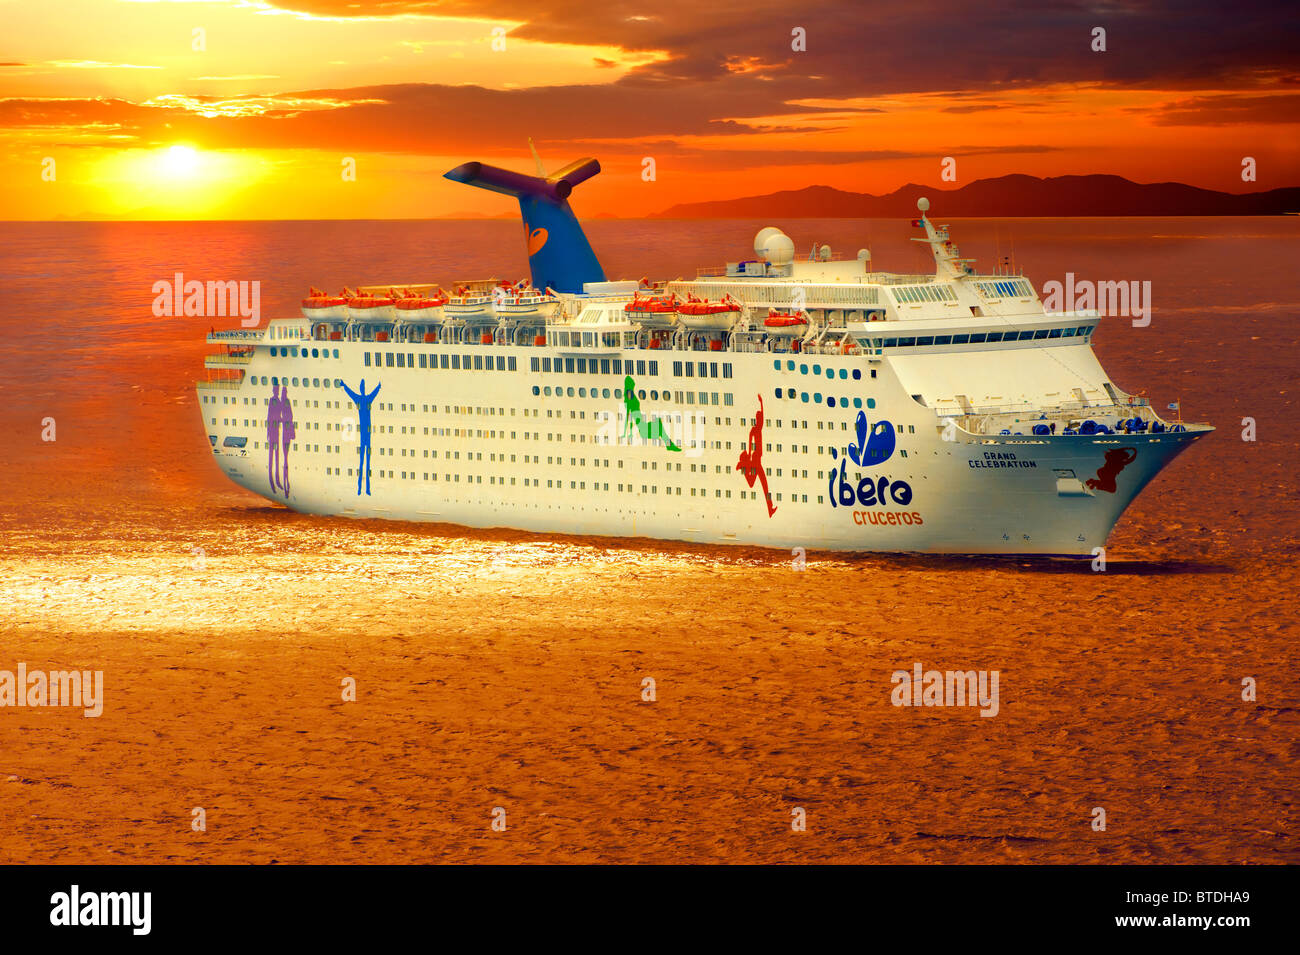 The Iberos Cruise lines Grand Celebration off Mykonos at sunset, Cyclades Islads, Greece - Stock Image